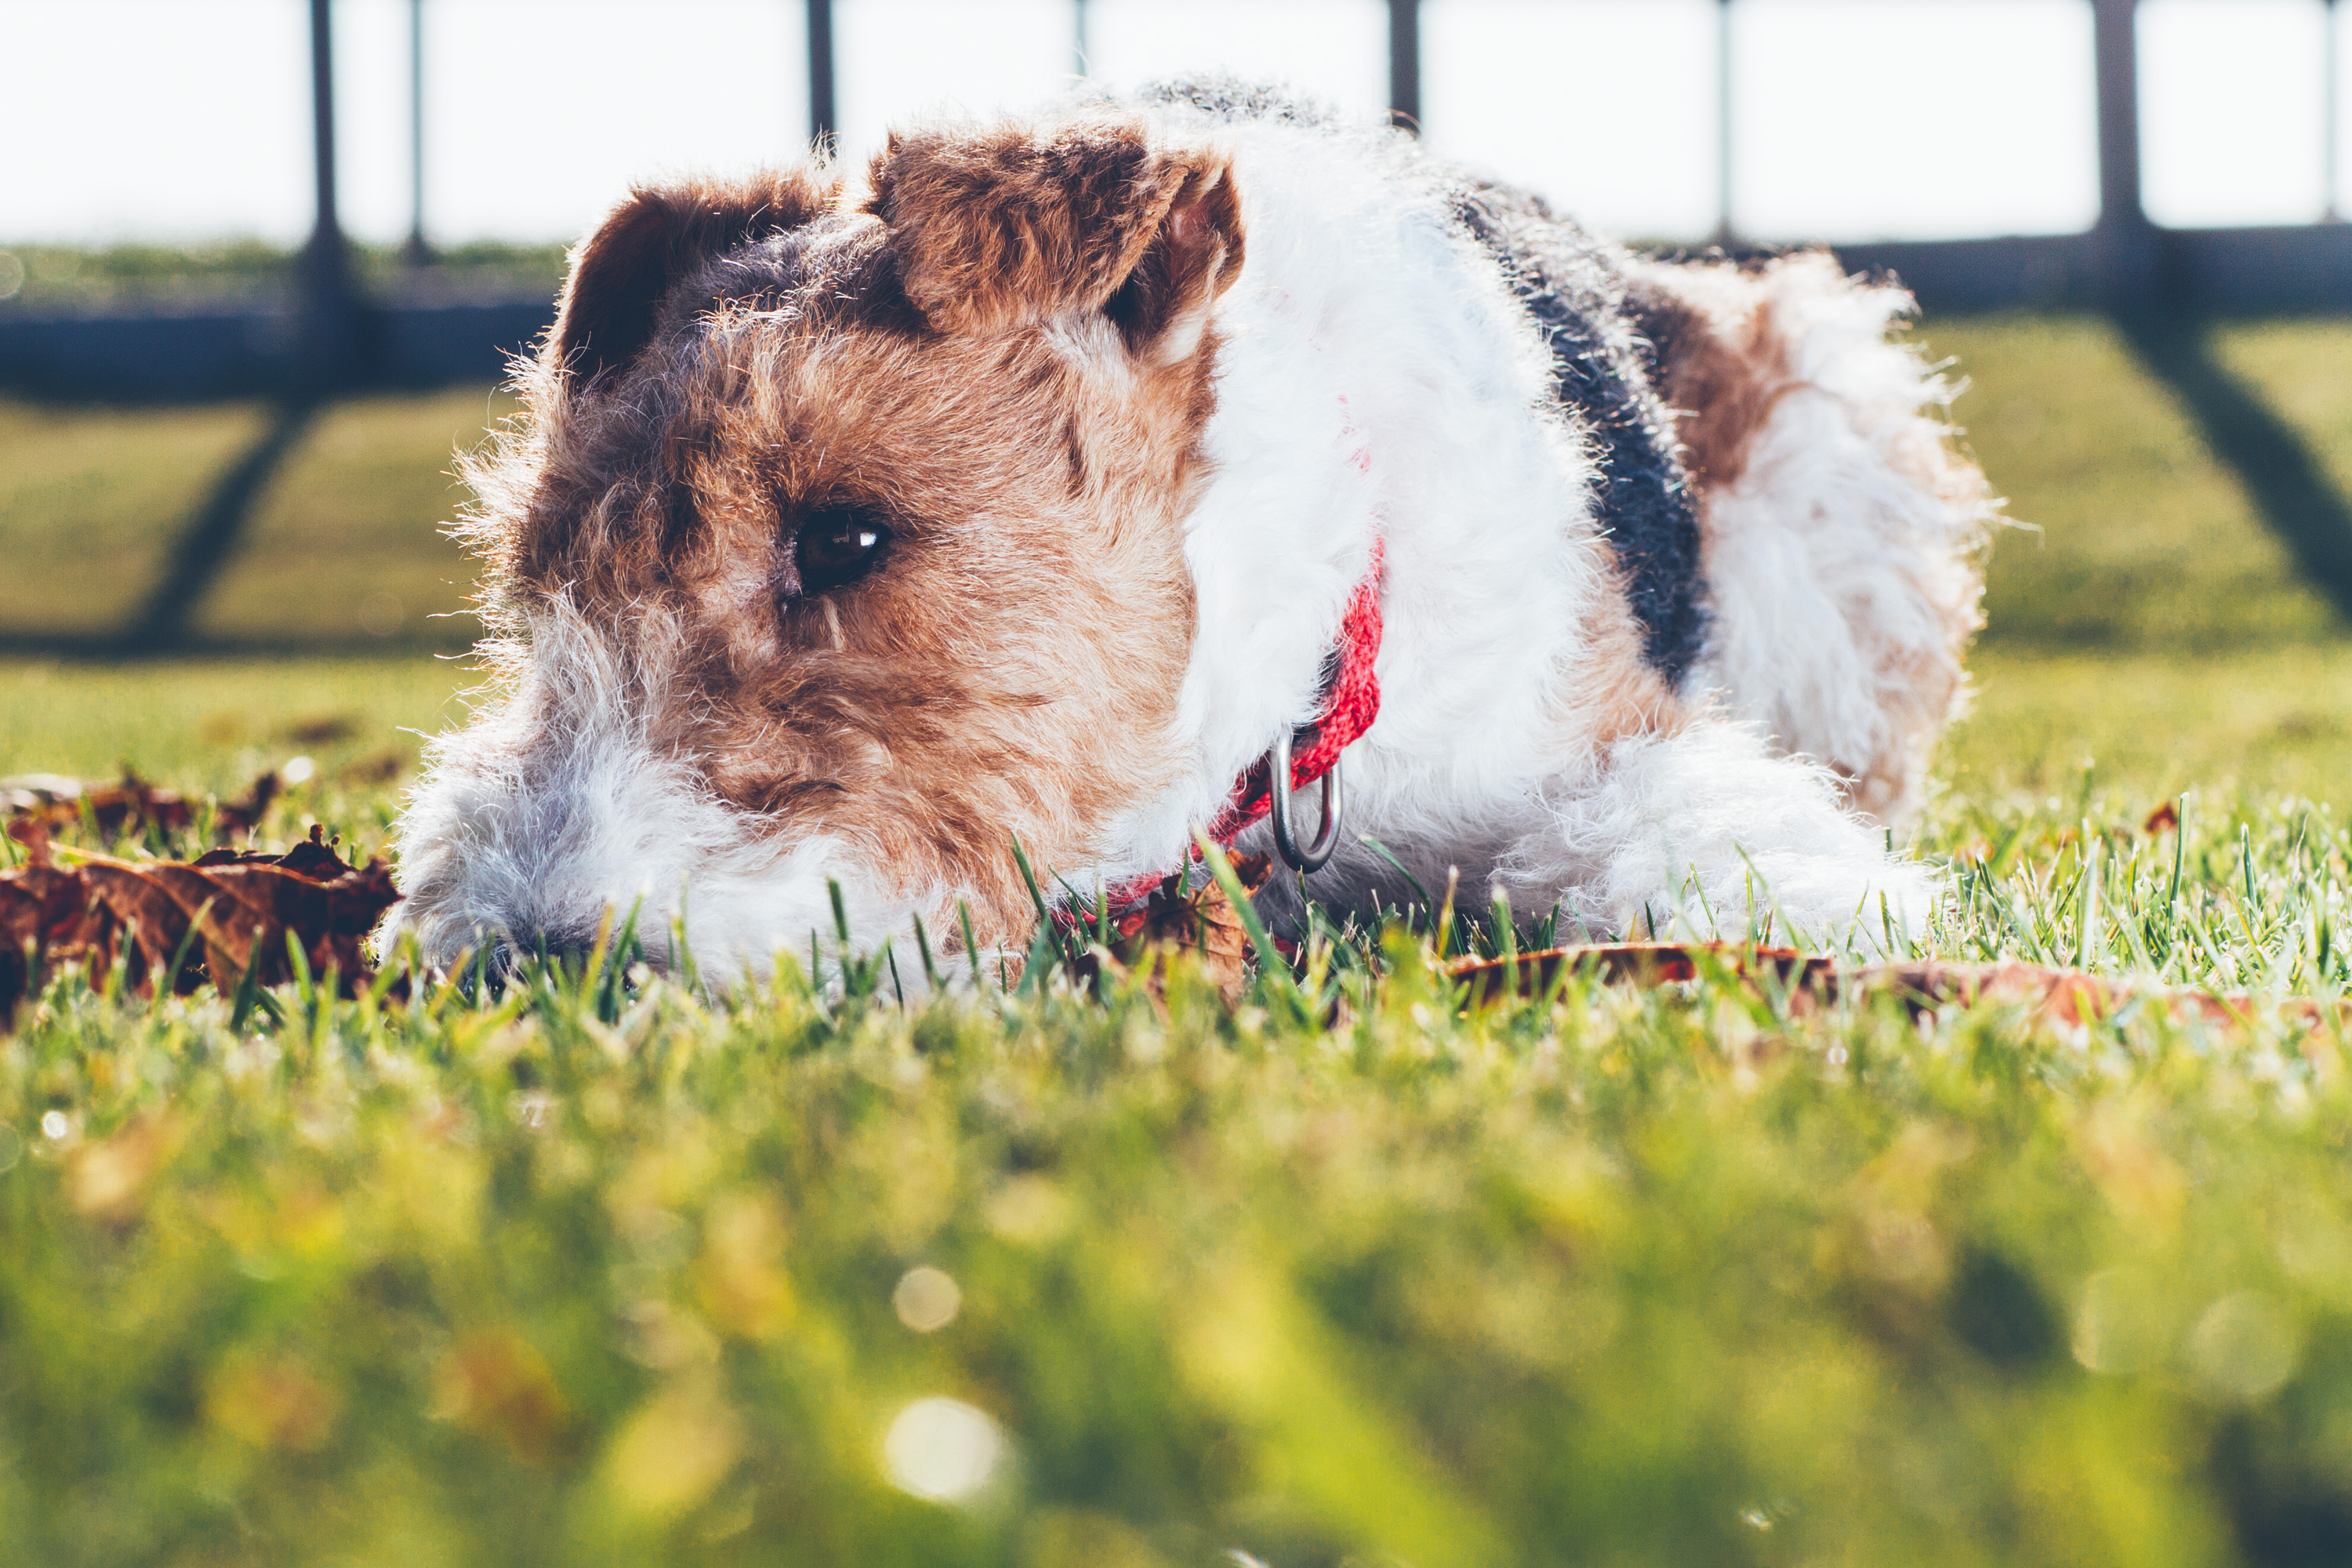 Andrea_Berlin_Chili_Foxterrier-8115